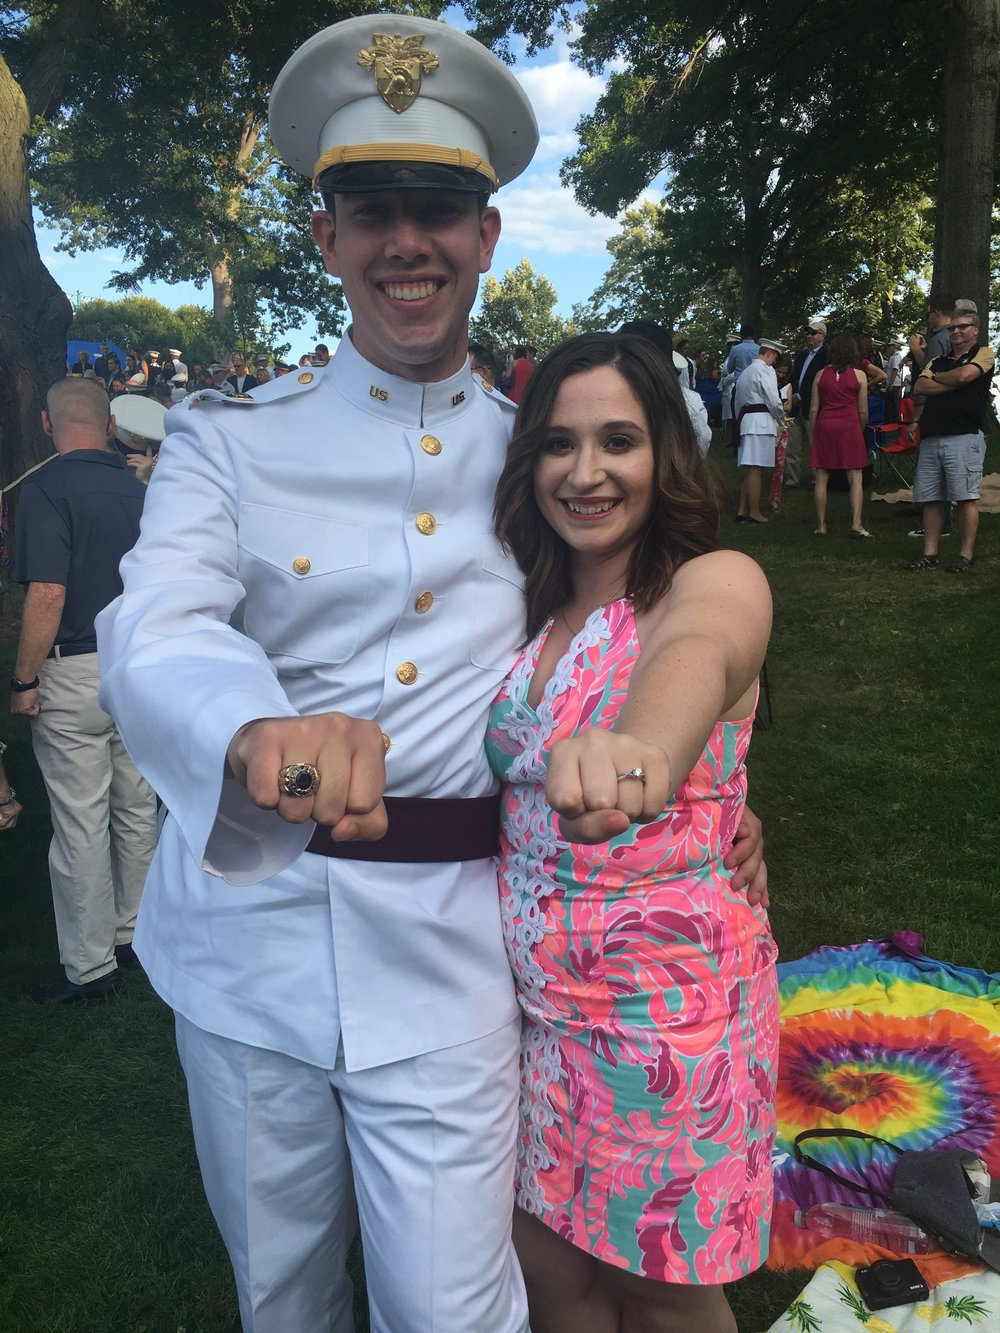 west point girlfriend, west point ring weekend, usma ring weekend outfit, ring weekend outfit